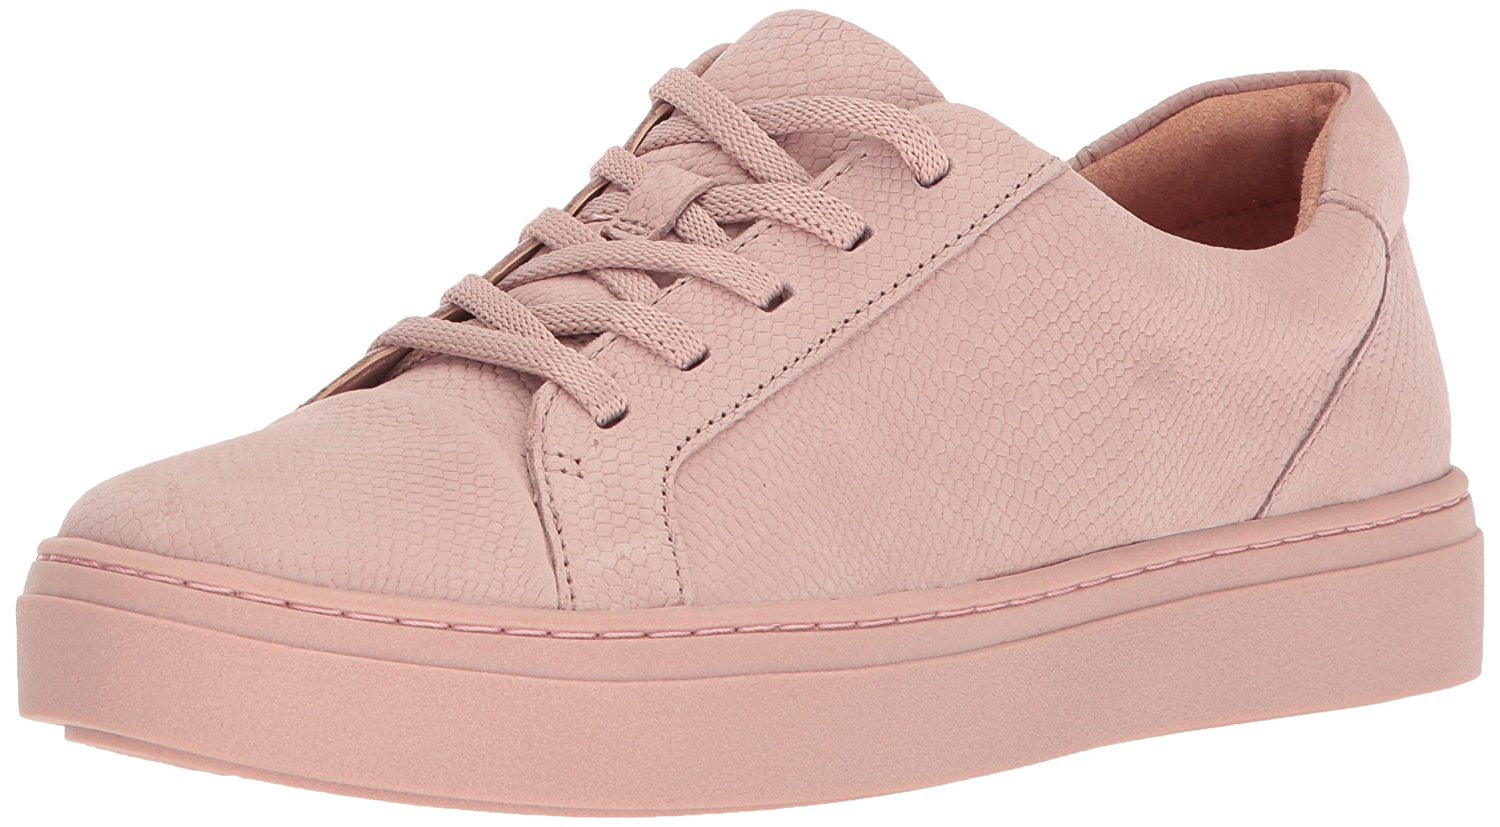 Naturalizer Womens cairo Leather Low Top Lace Up Fashion Sneakers